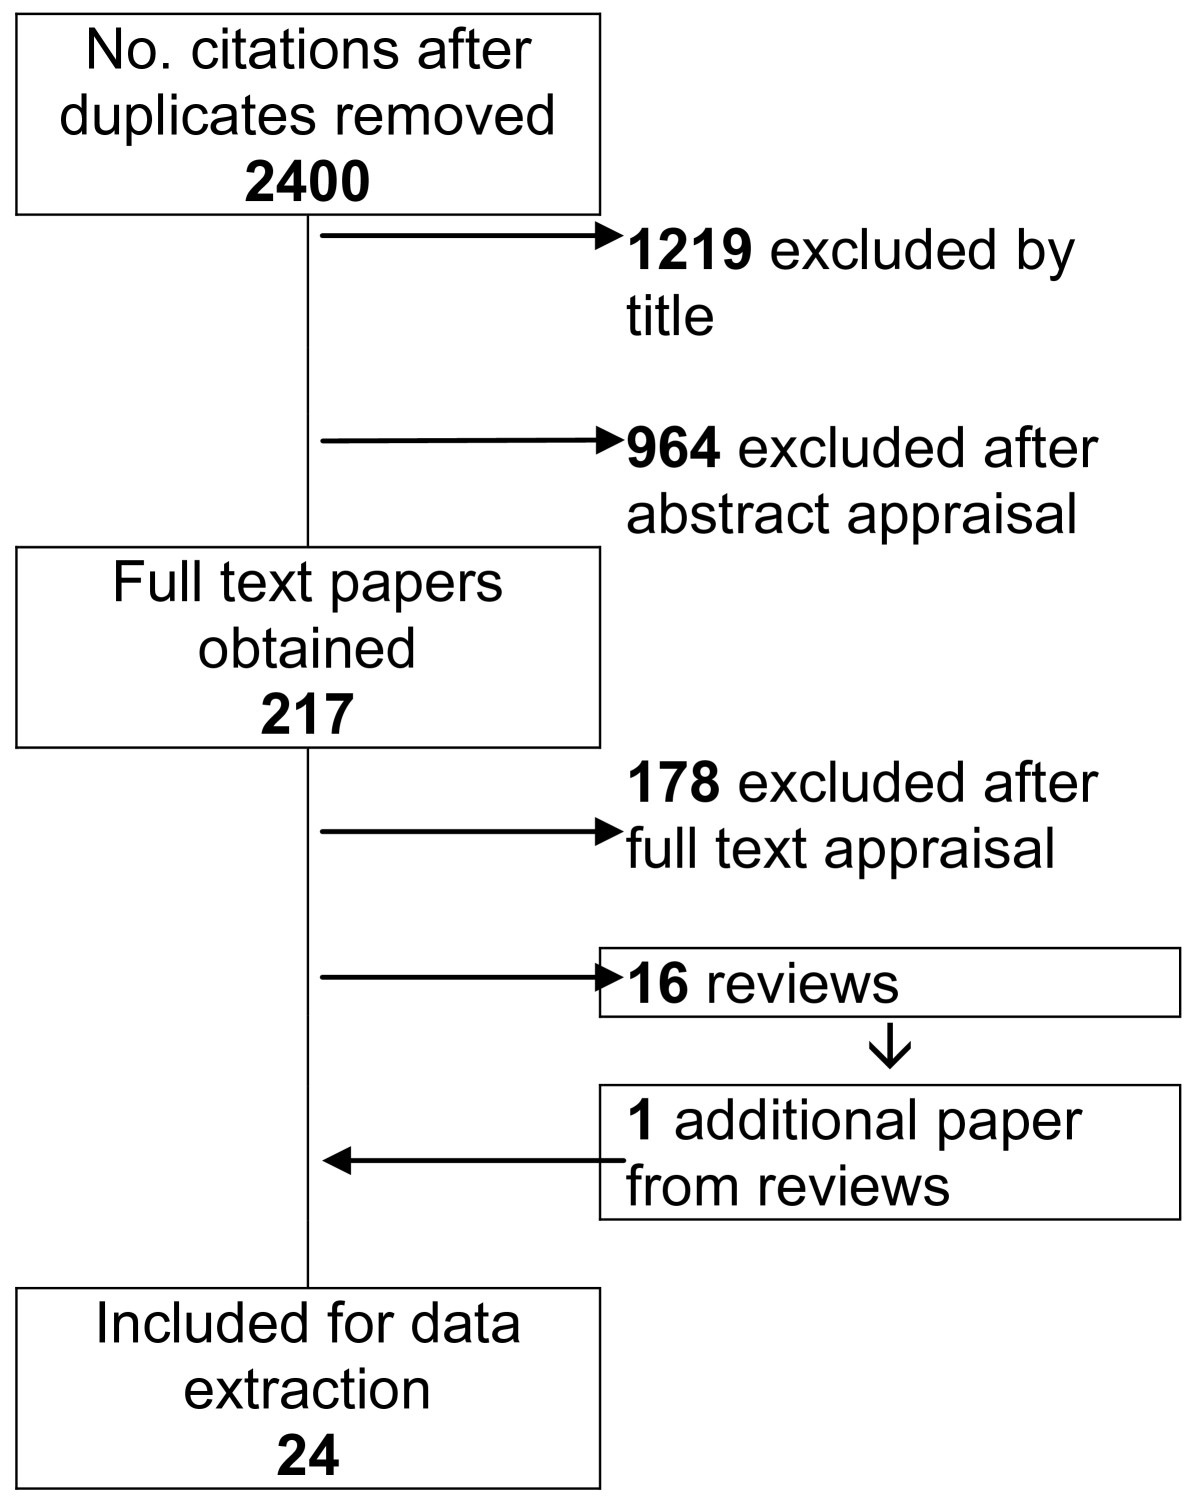 http://static-content.springer.com/image/art%3A10.1186%2F1471-2458-10-459/MediaObjects/12889_2009_Article_2370_Fig1_HTML.jpg